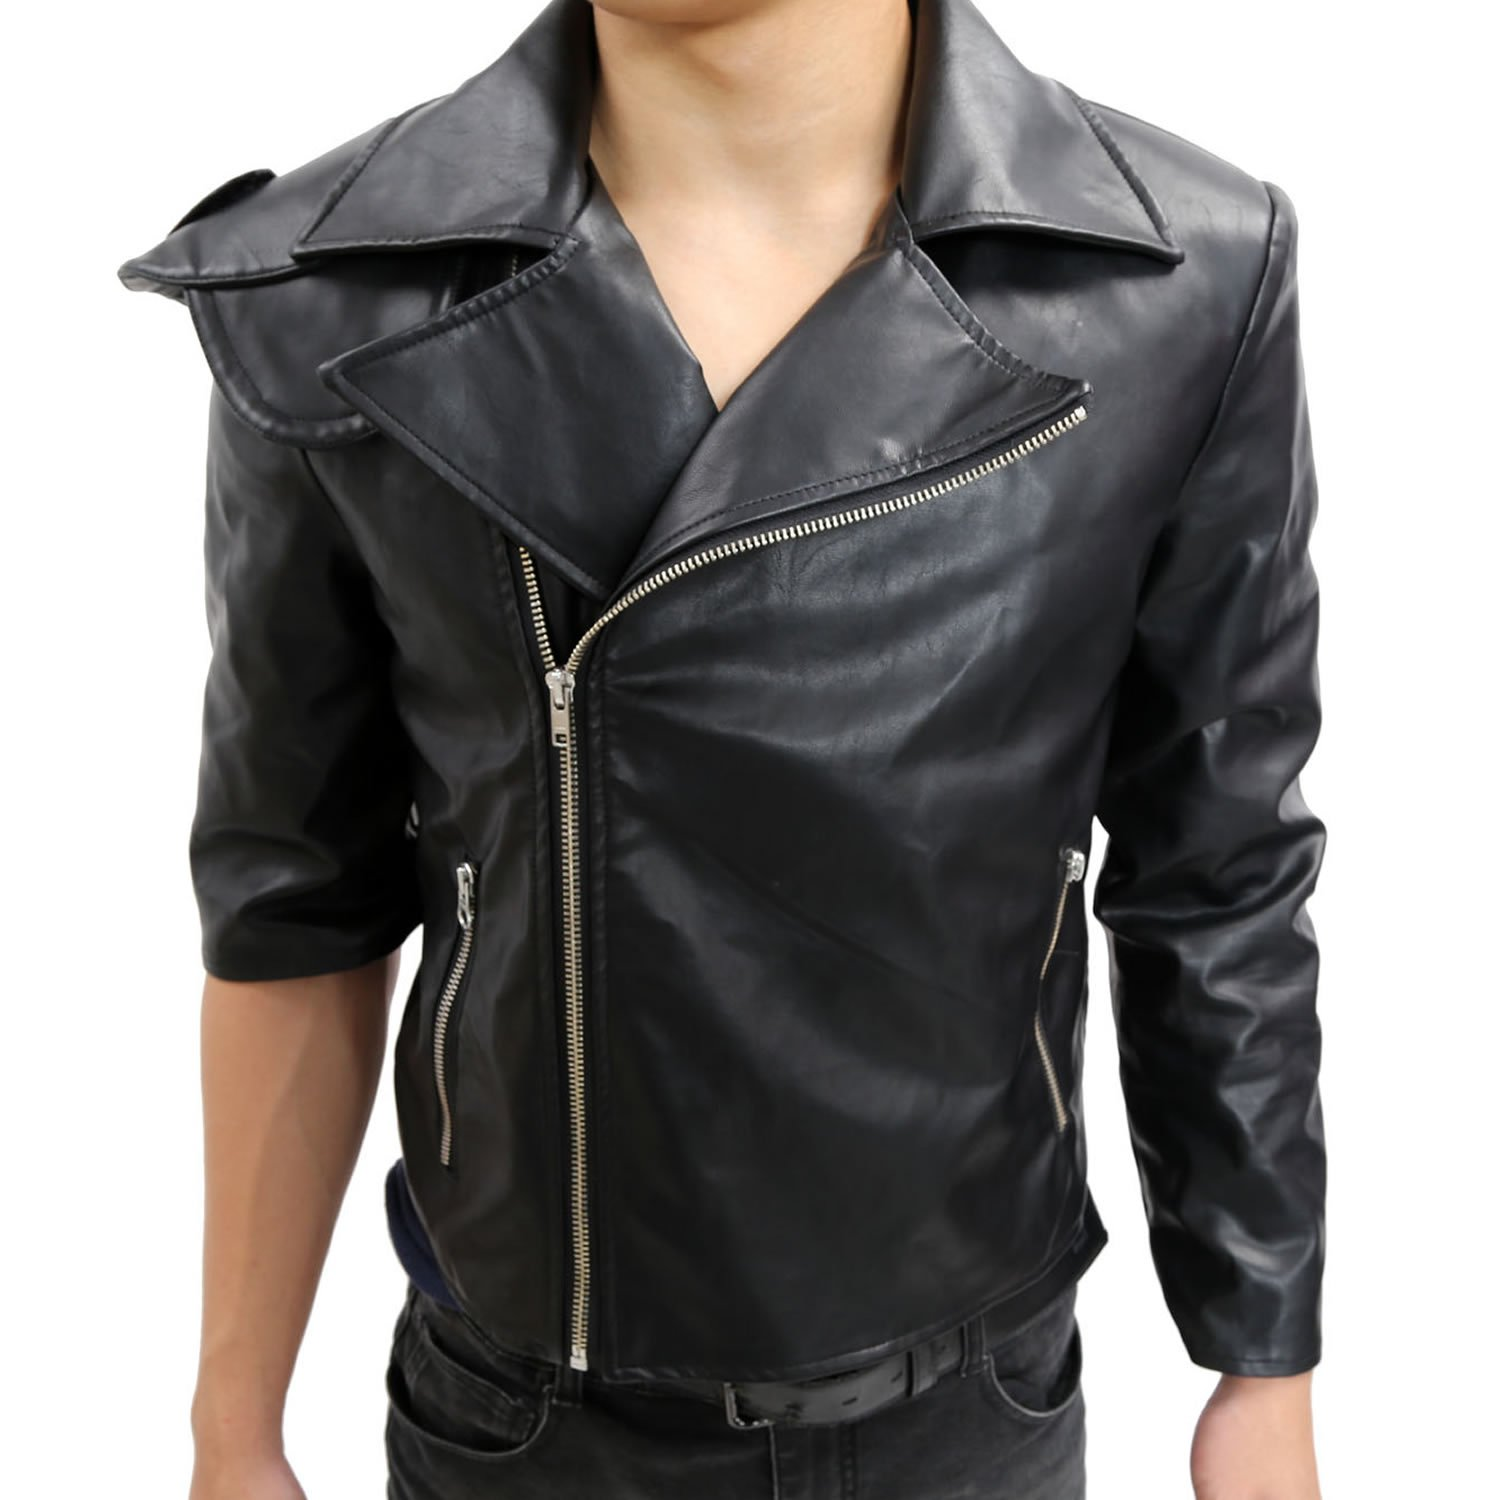 Halloween Men's Max Leather Jacket Coat Costume Black